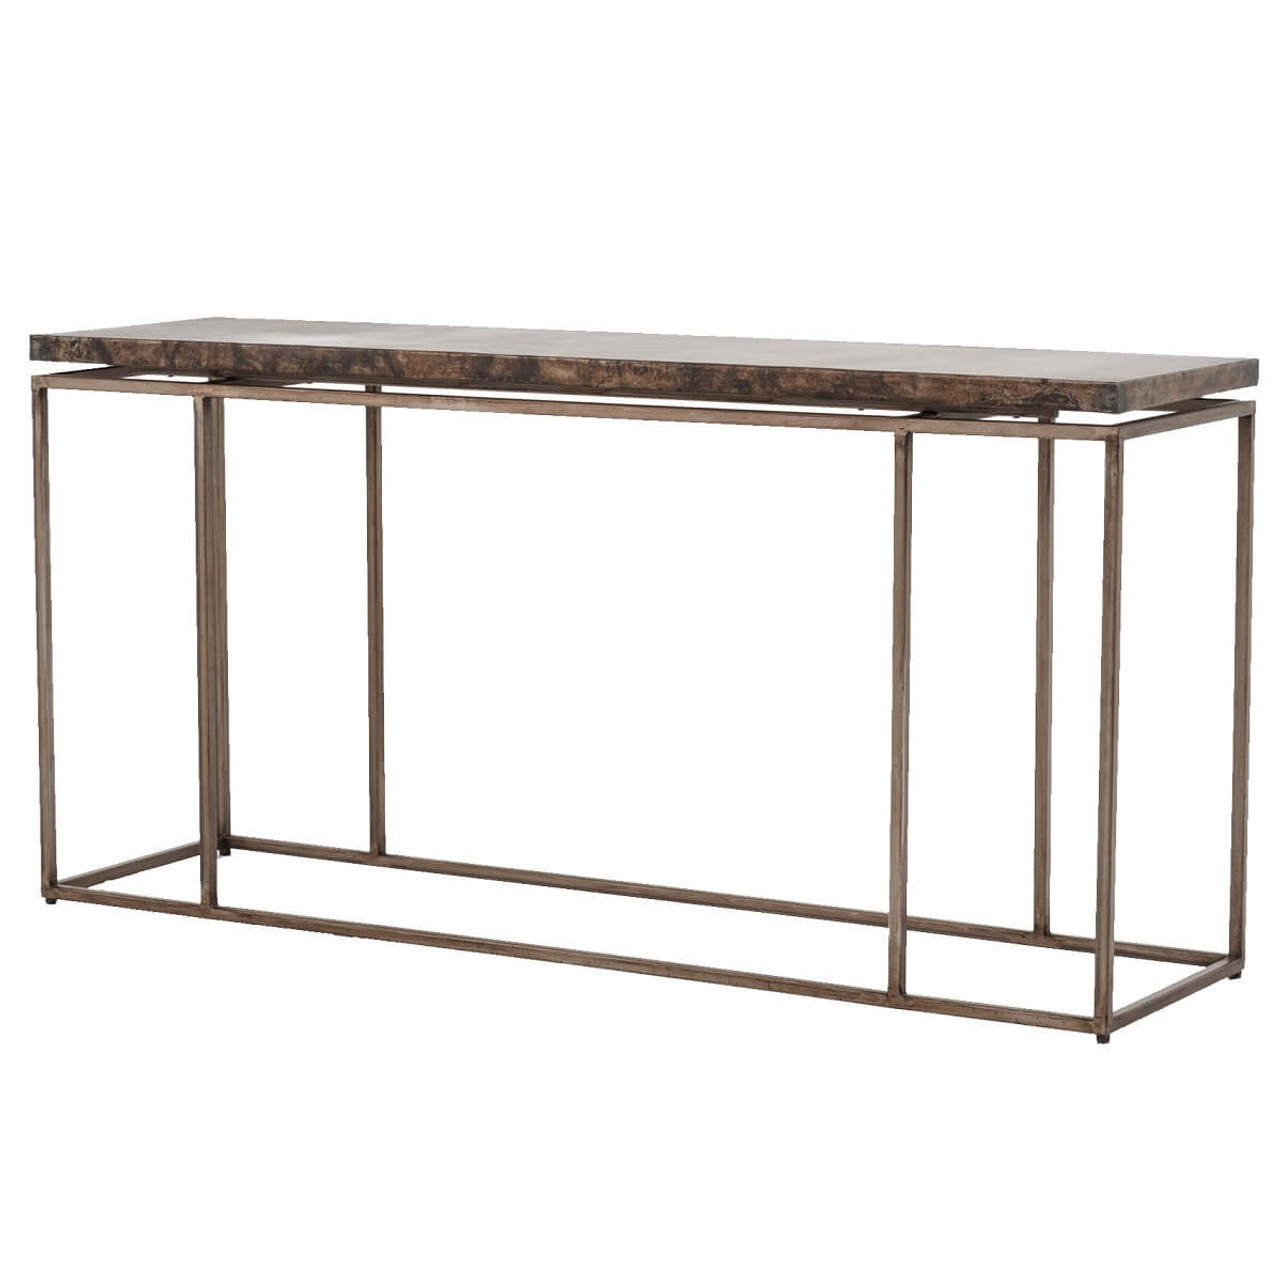 Merveilleux Roman Box Frame Industrial Iron Console Table